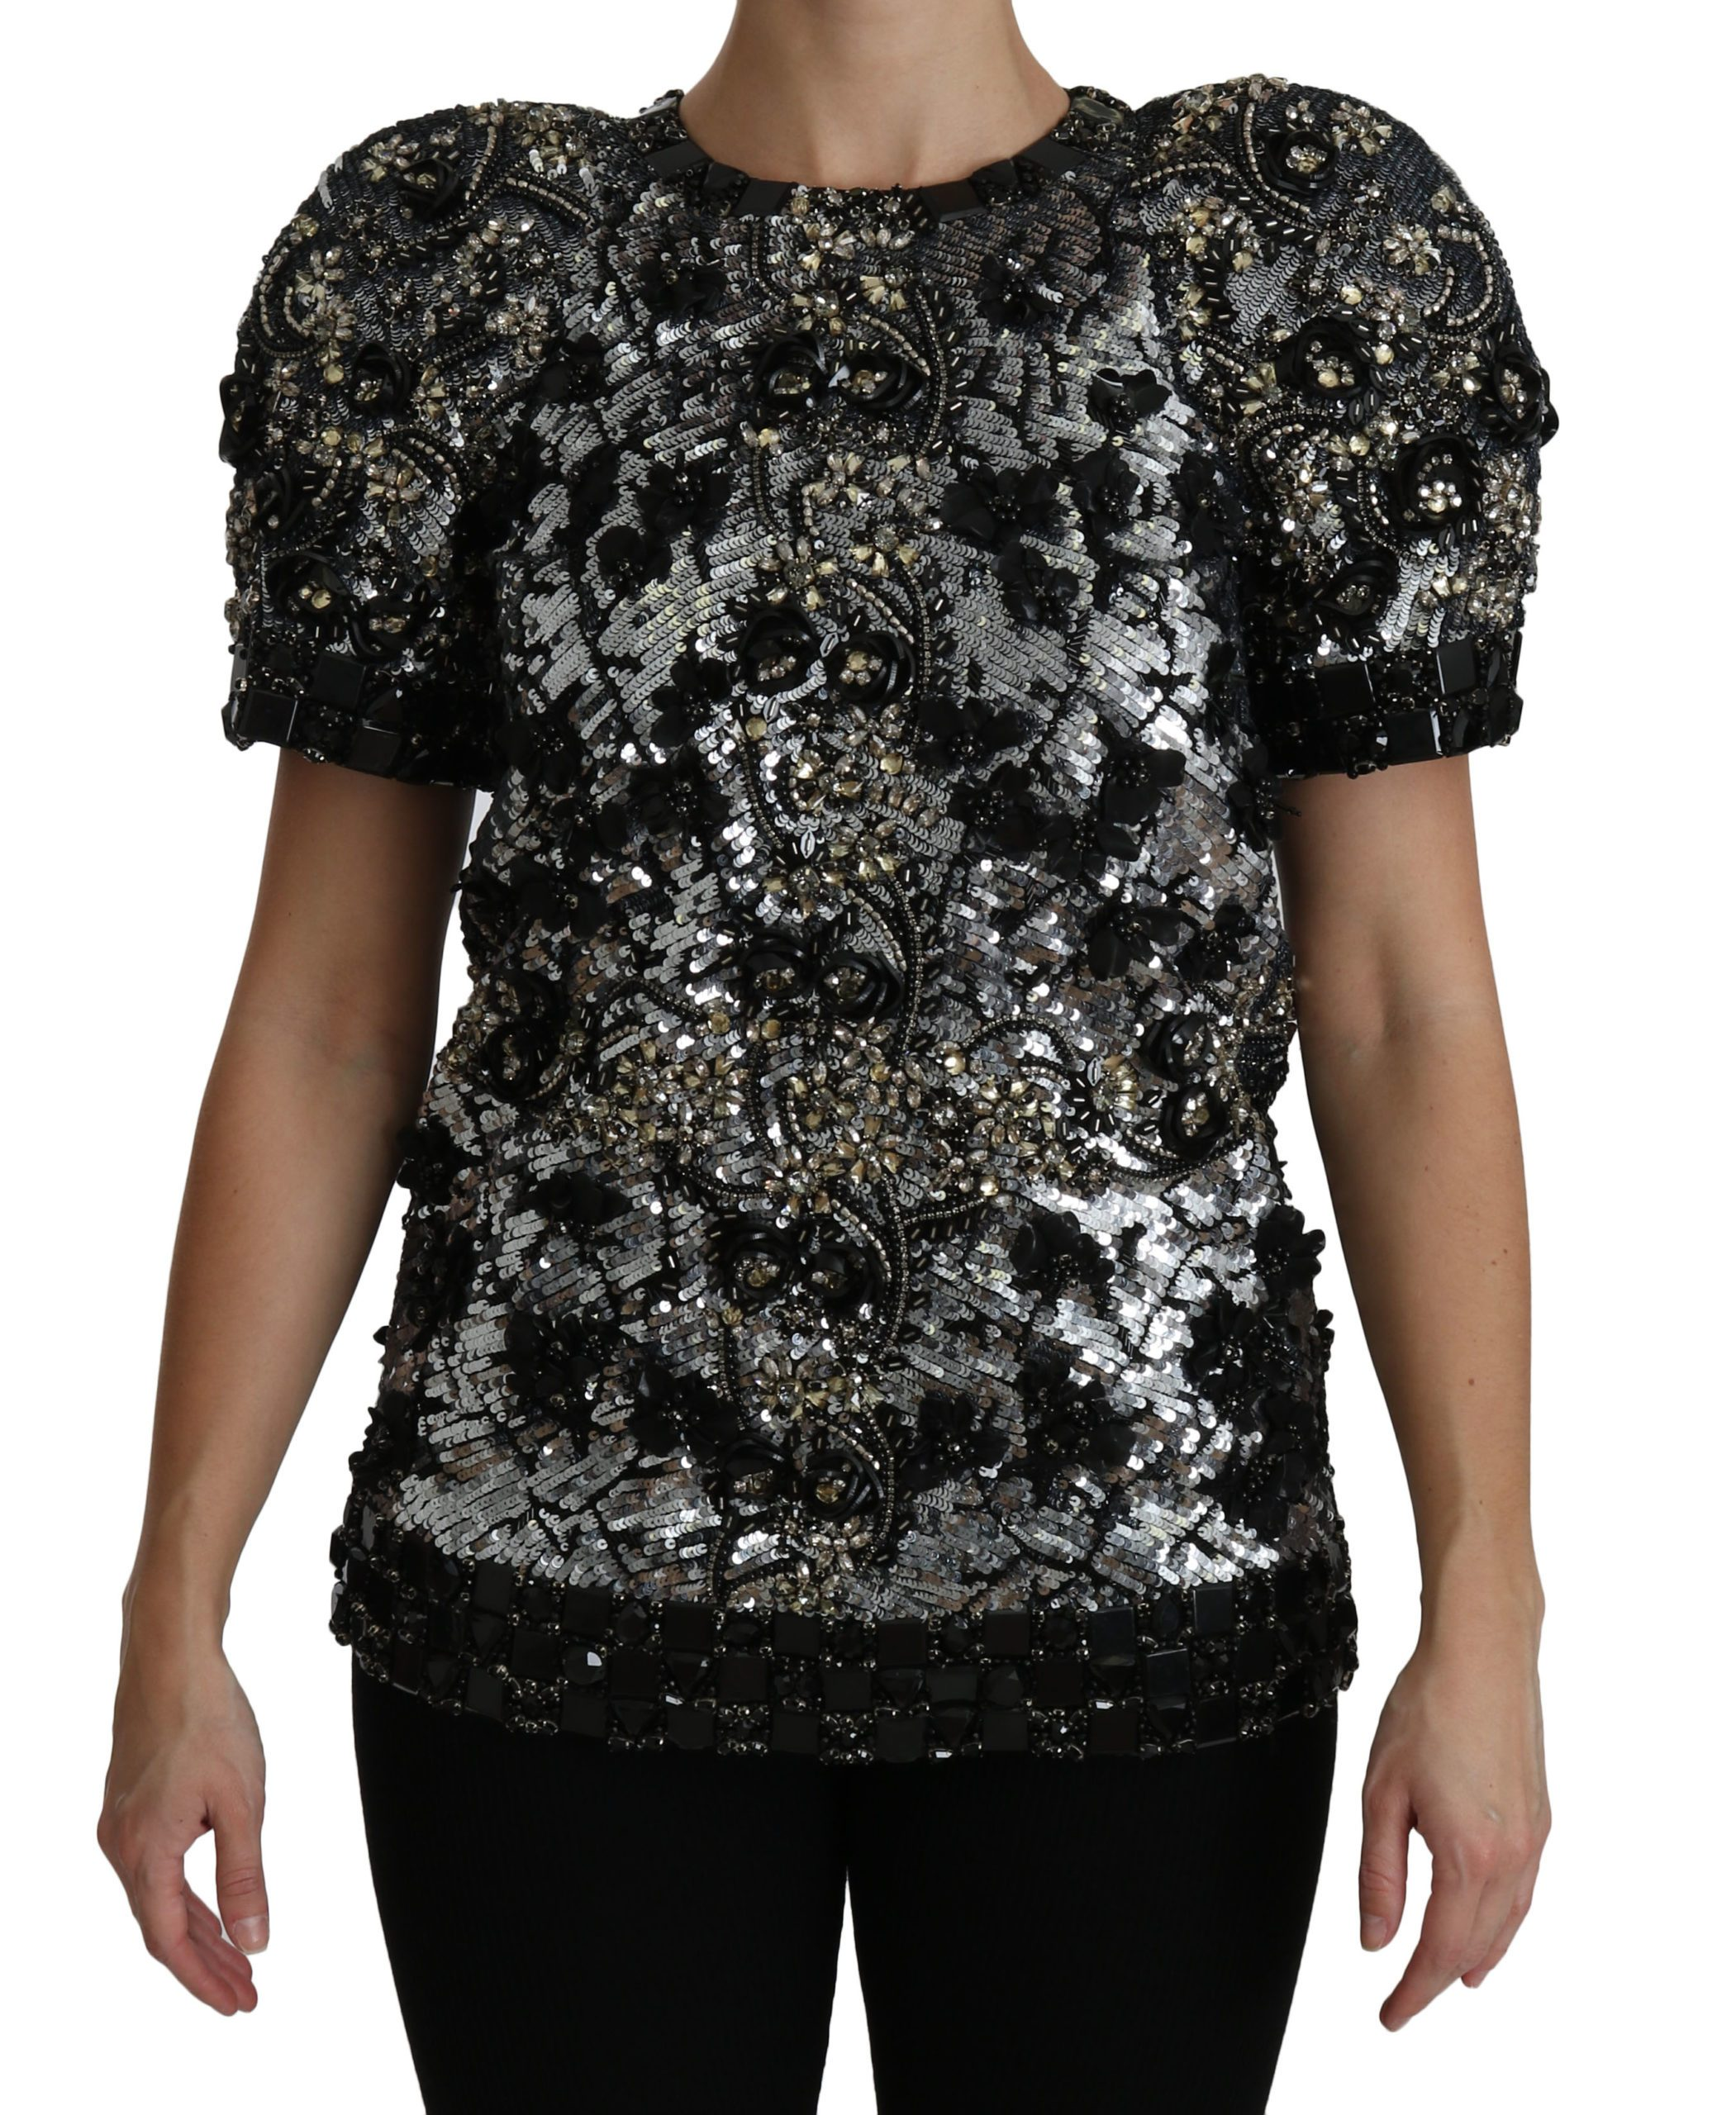 Black Sequined Crystal Embellished Top Blouse - IT38 XS